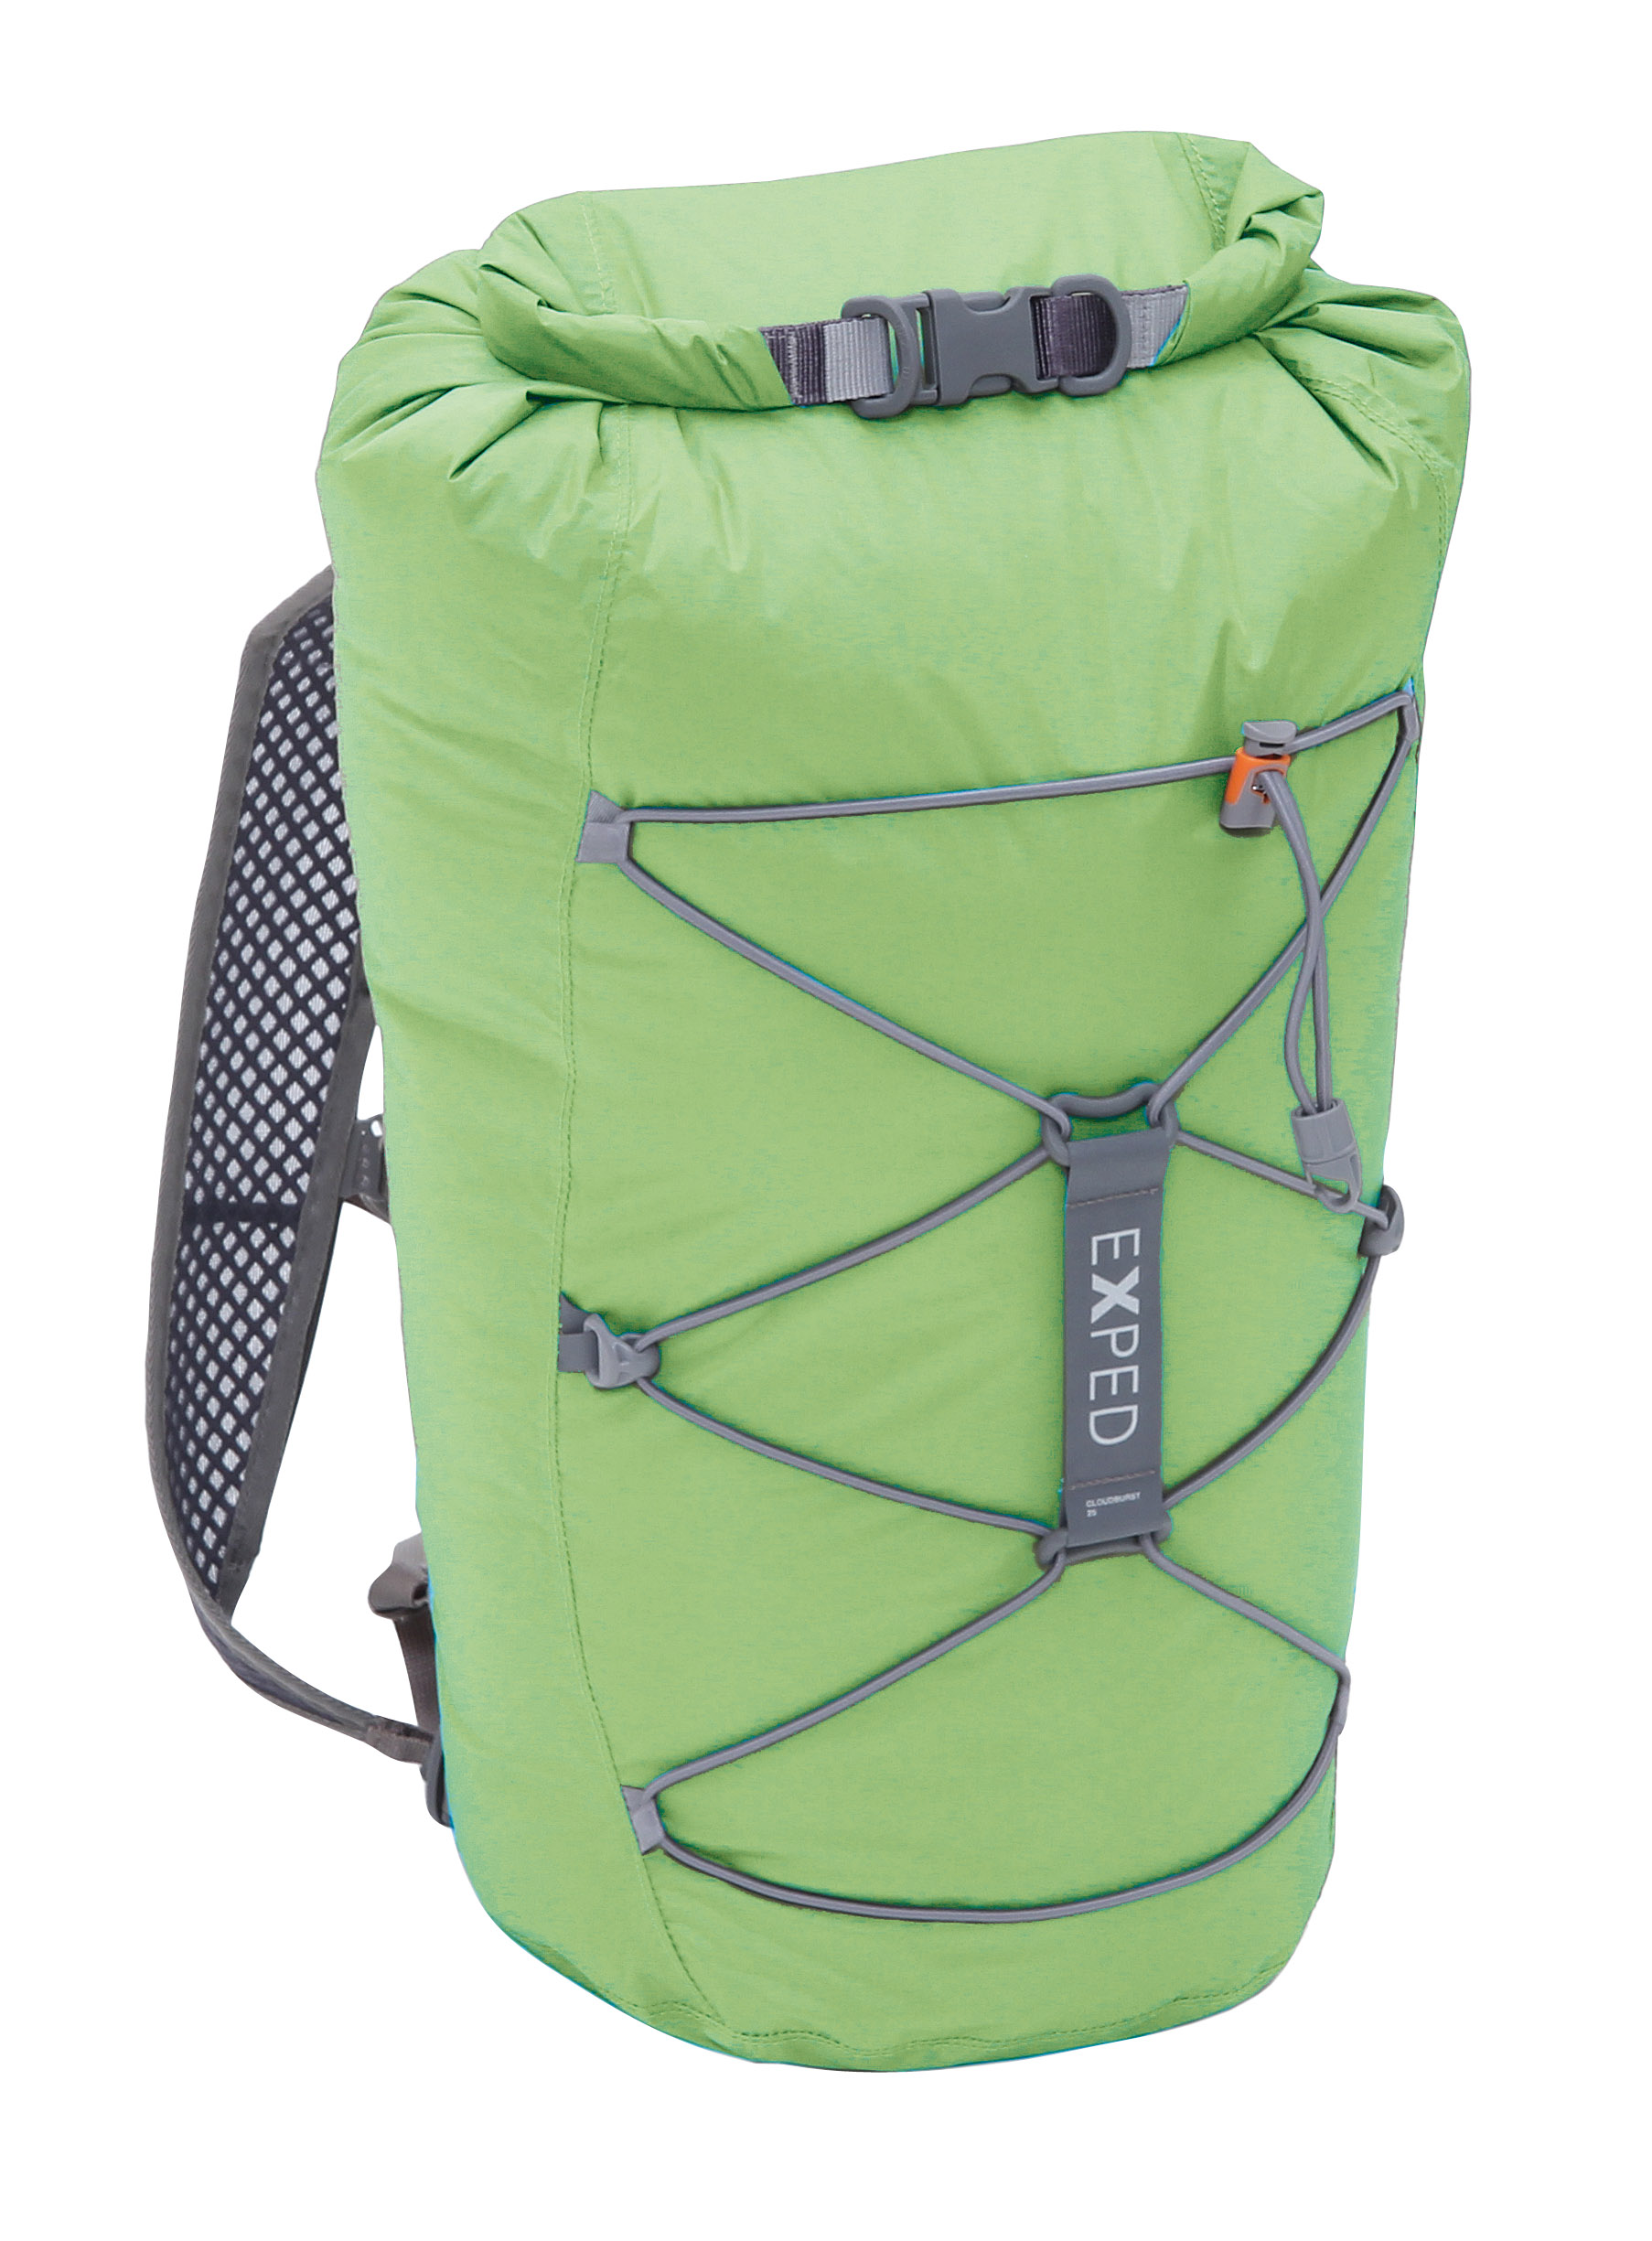 18d201d1d2 Exped Cloudburst 25 Dry Bag with Free S H — CampSaver